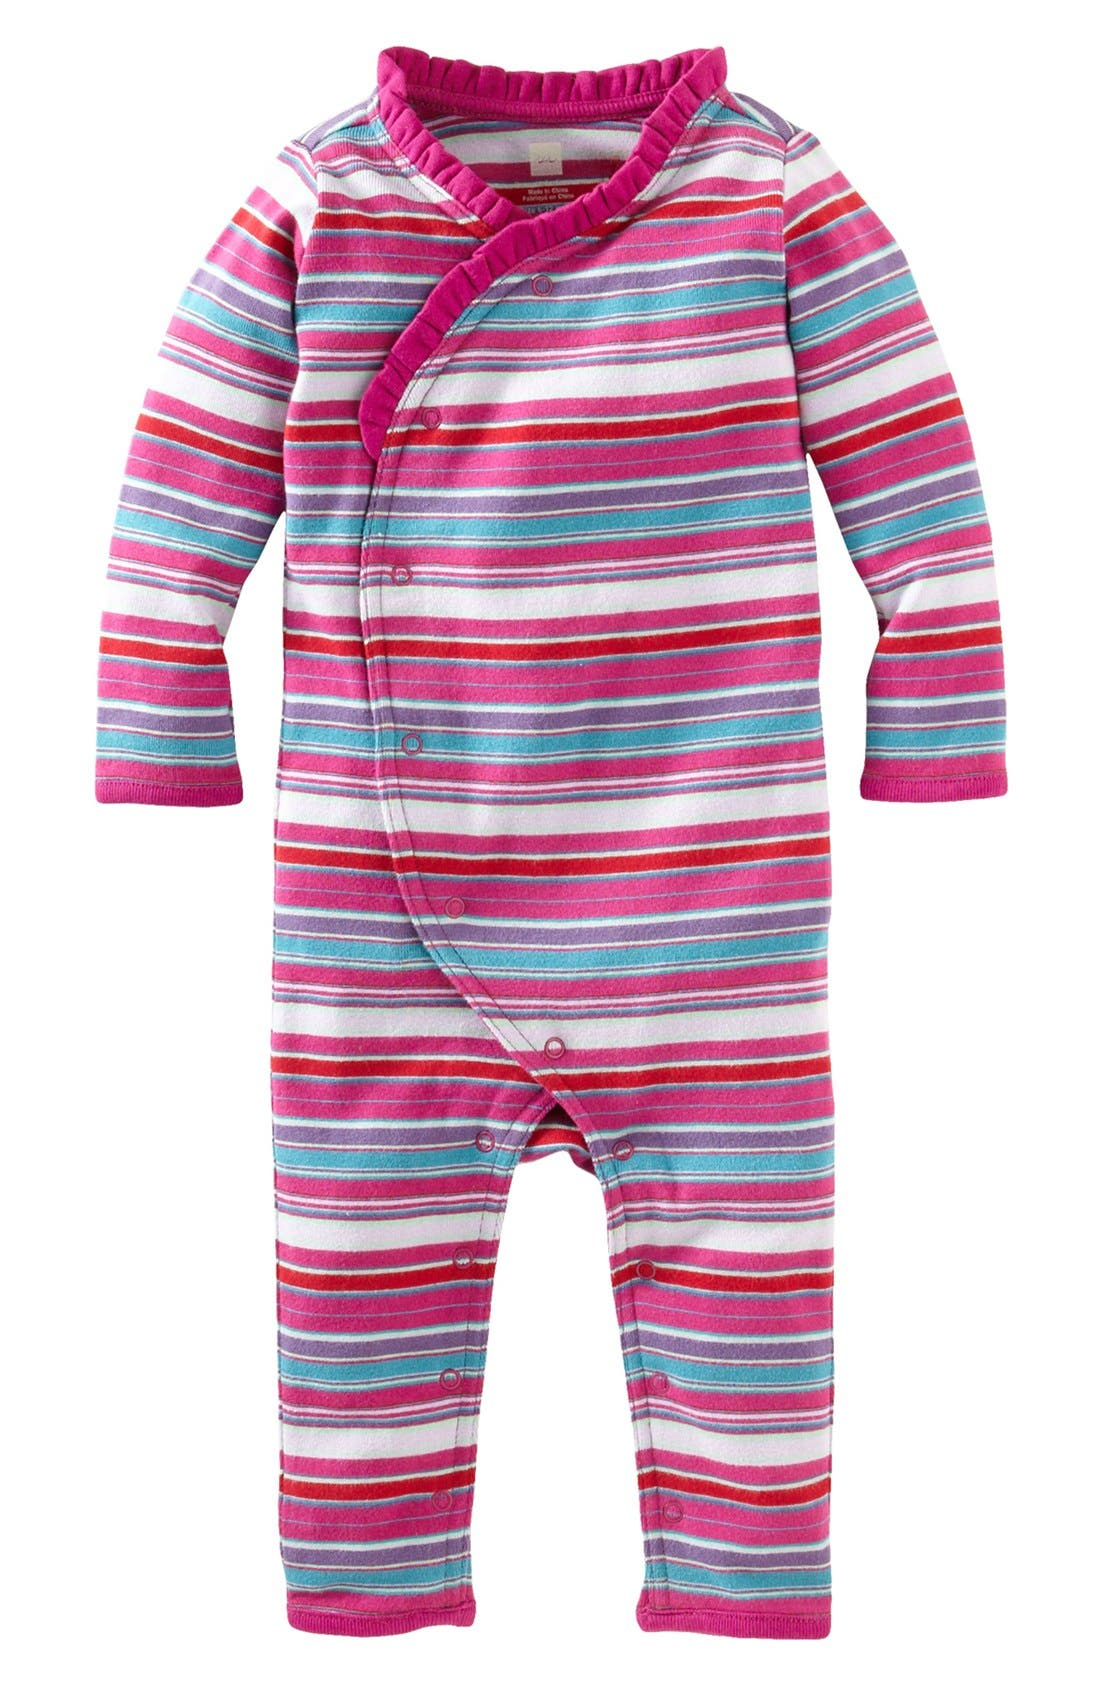 Alternate Image 1 Selected - Tea Collection 'Lunar Stripe' Romper (Baby Girls)